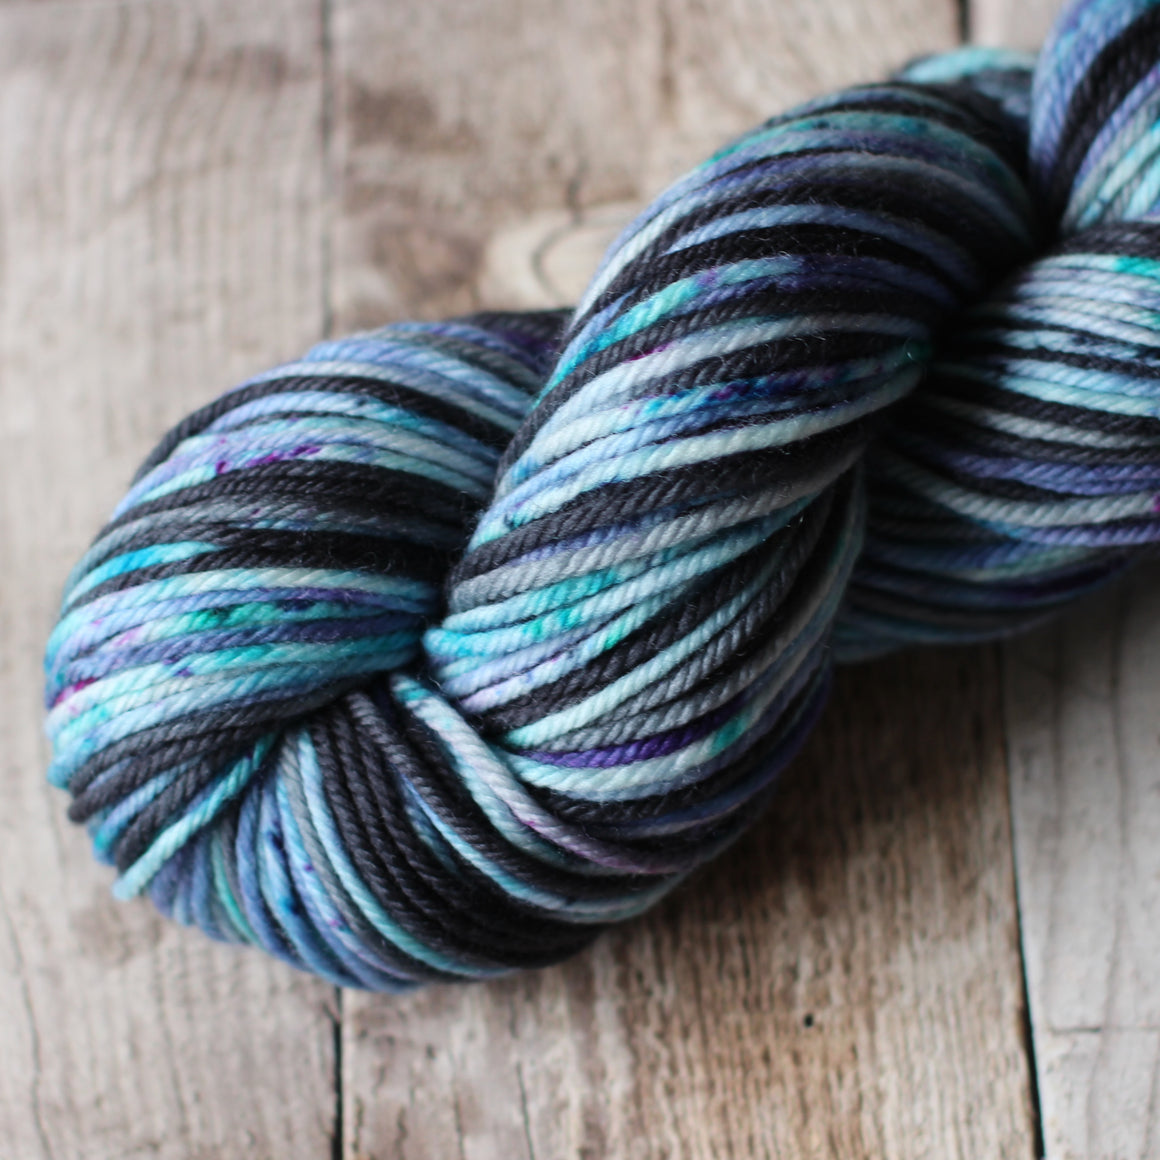 Pickle Chunky / 12ply Yarn - No. 303